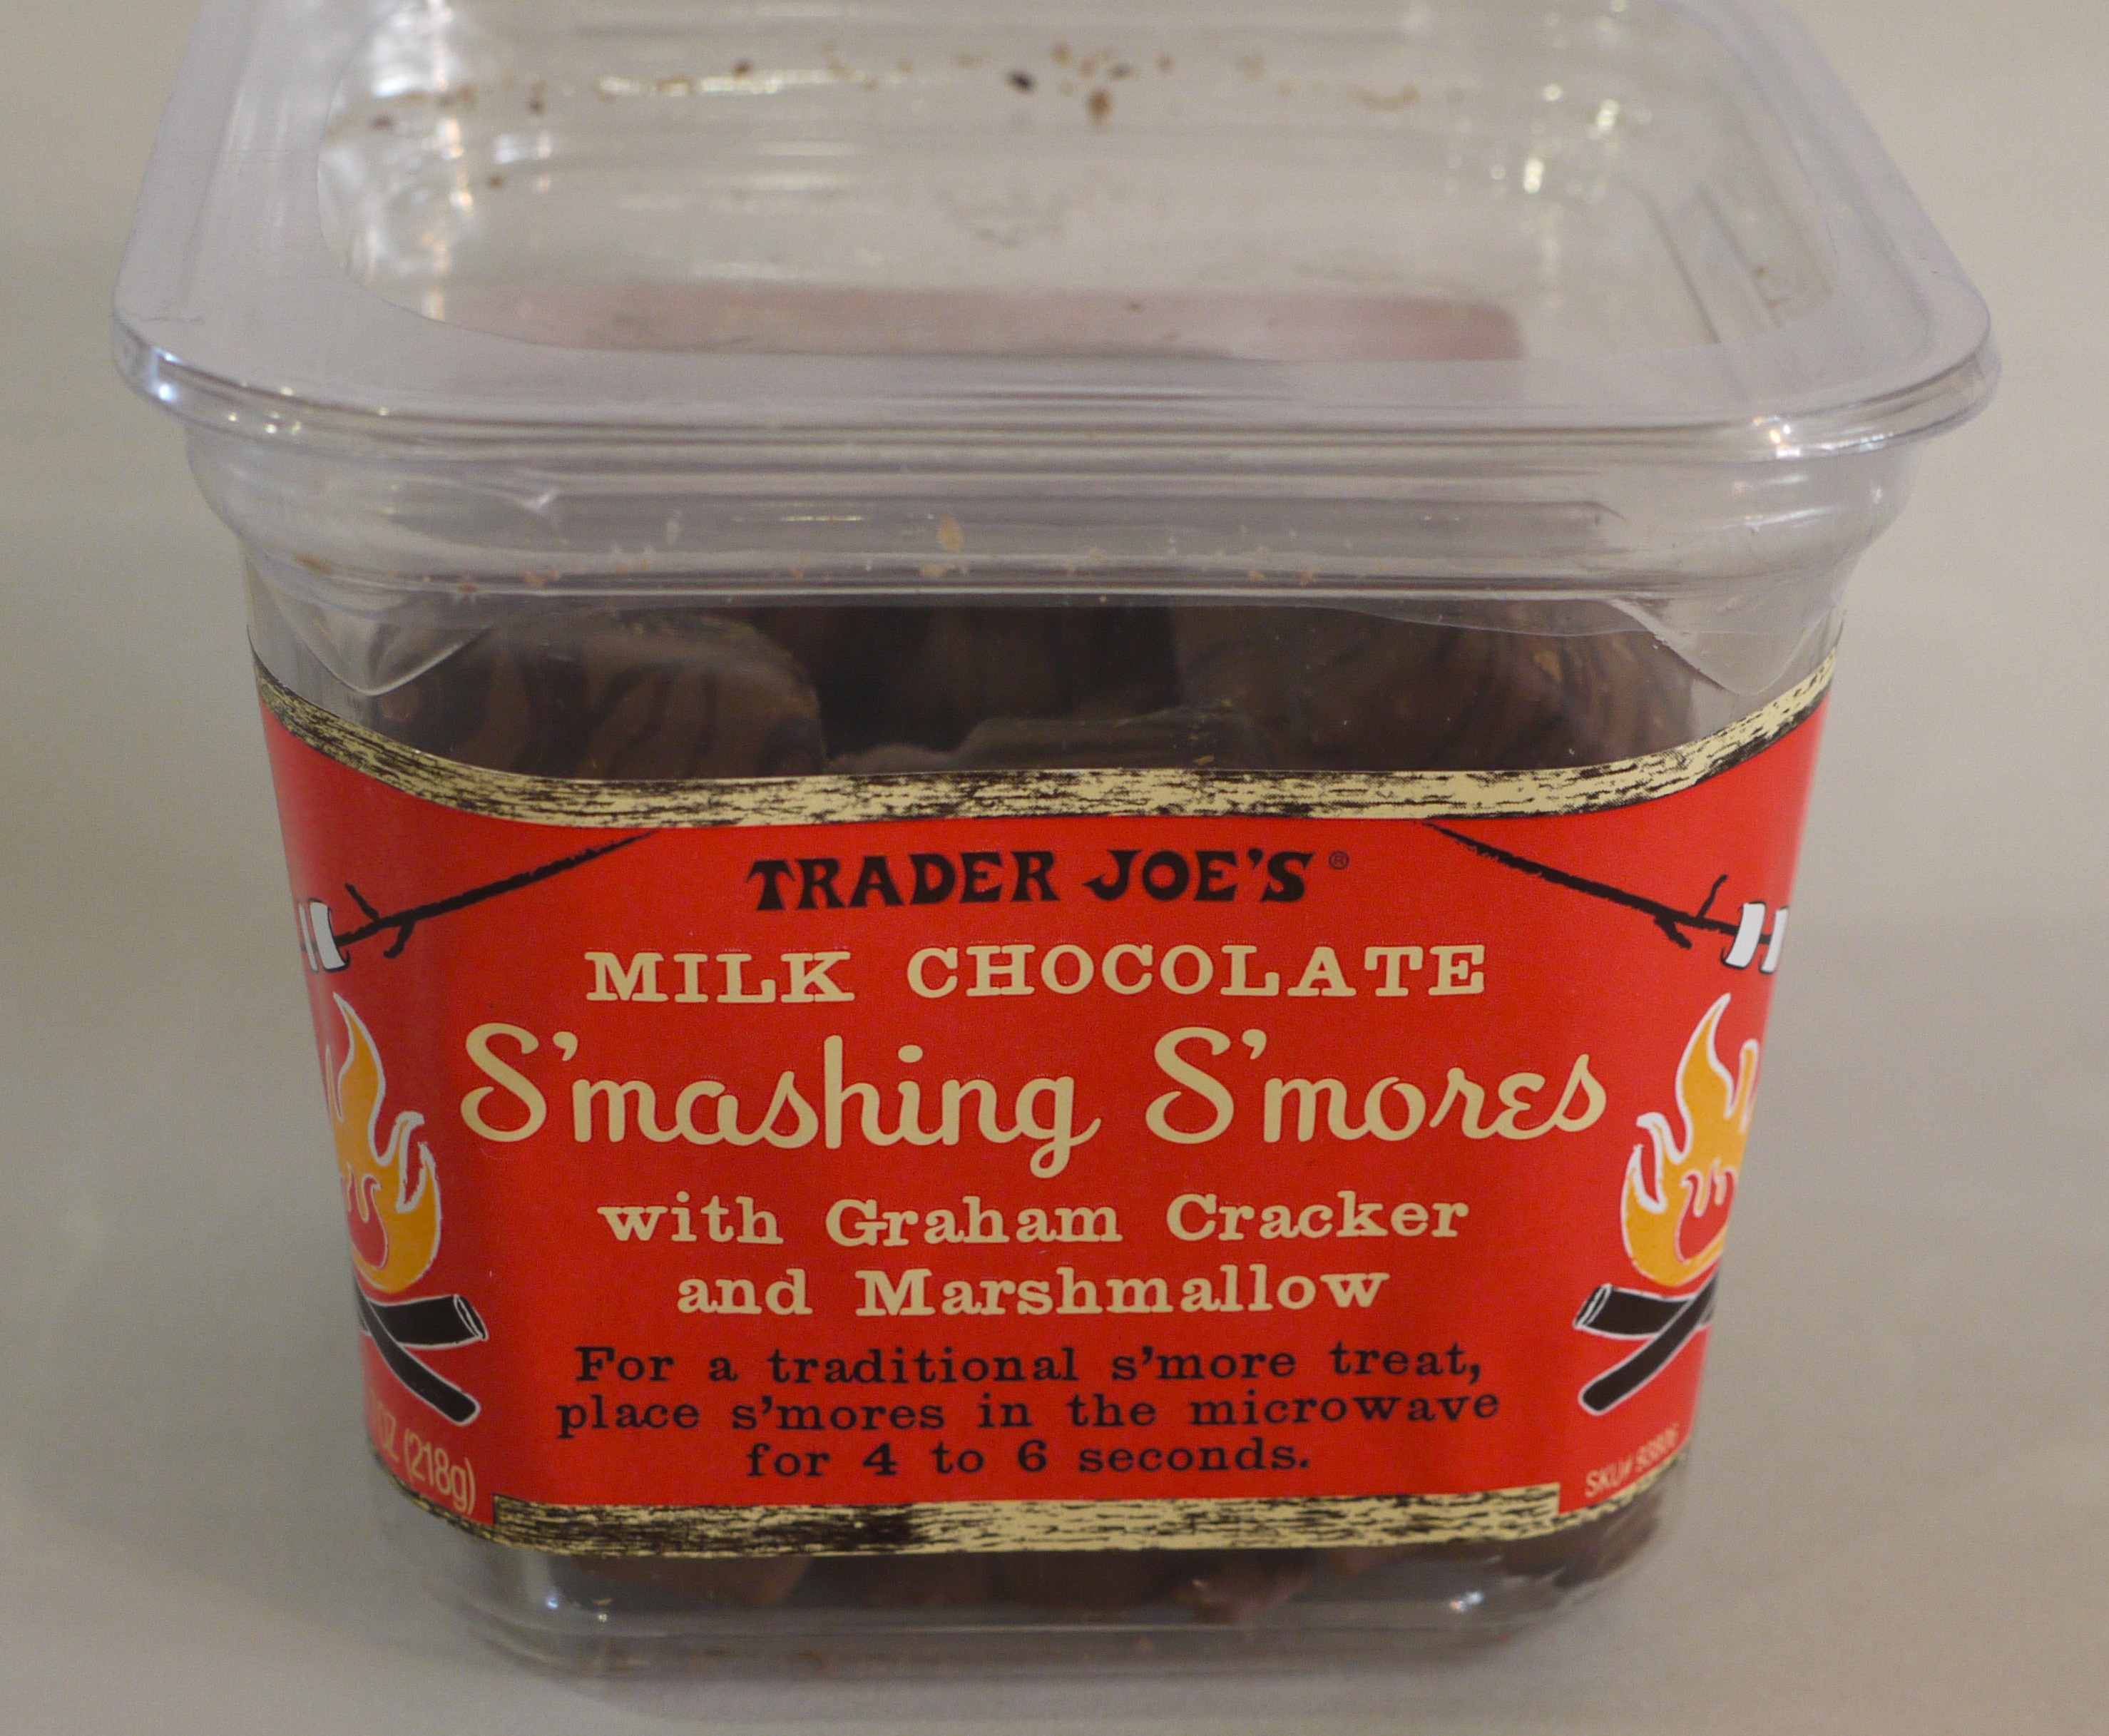 S Mashing S Mores From Trader Joes Are Simply Smashing